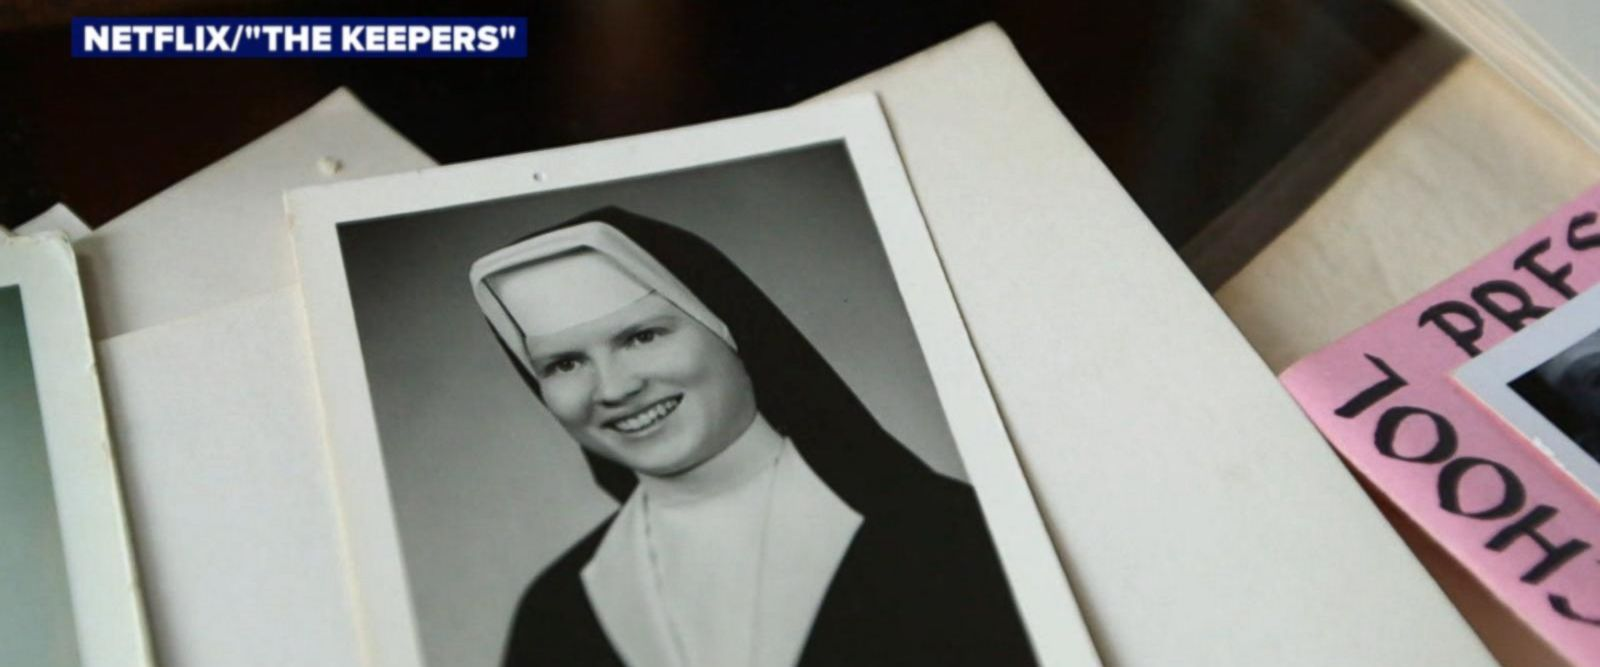 VIDEO: 'The Keepers': How 2 women delve into the mystery of their teacher's murder